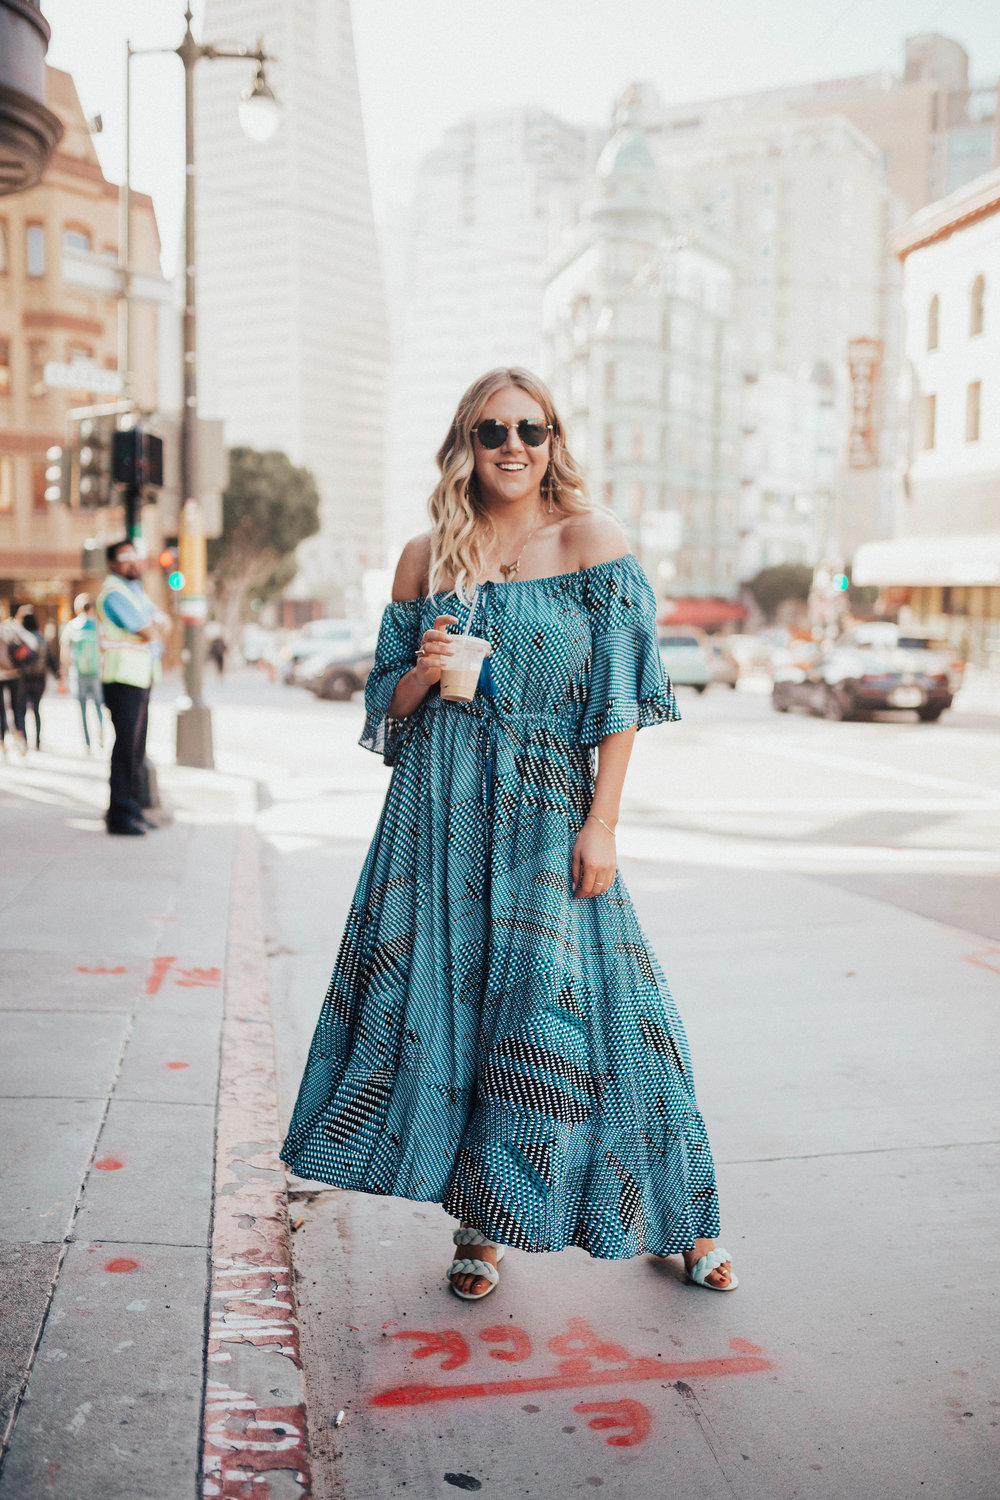 via Thea: Off the shoulder blue SheIn dress, BP sunnies